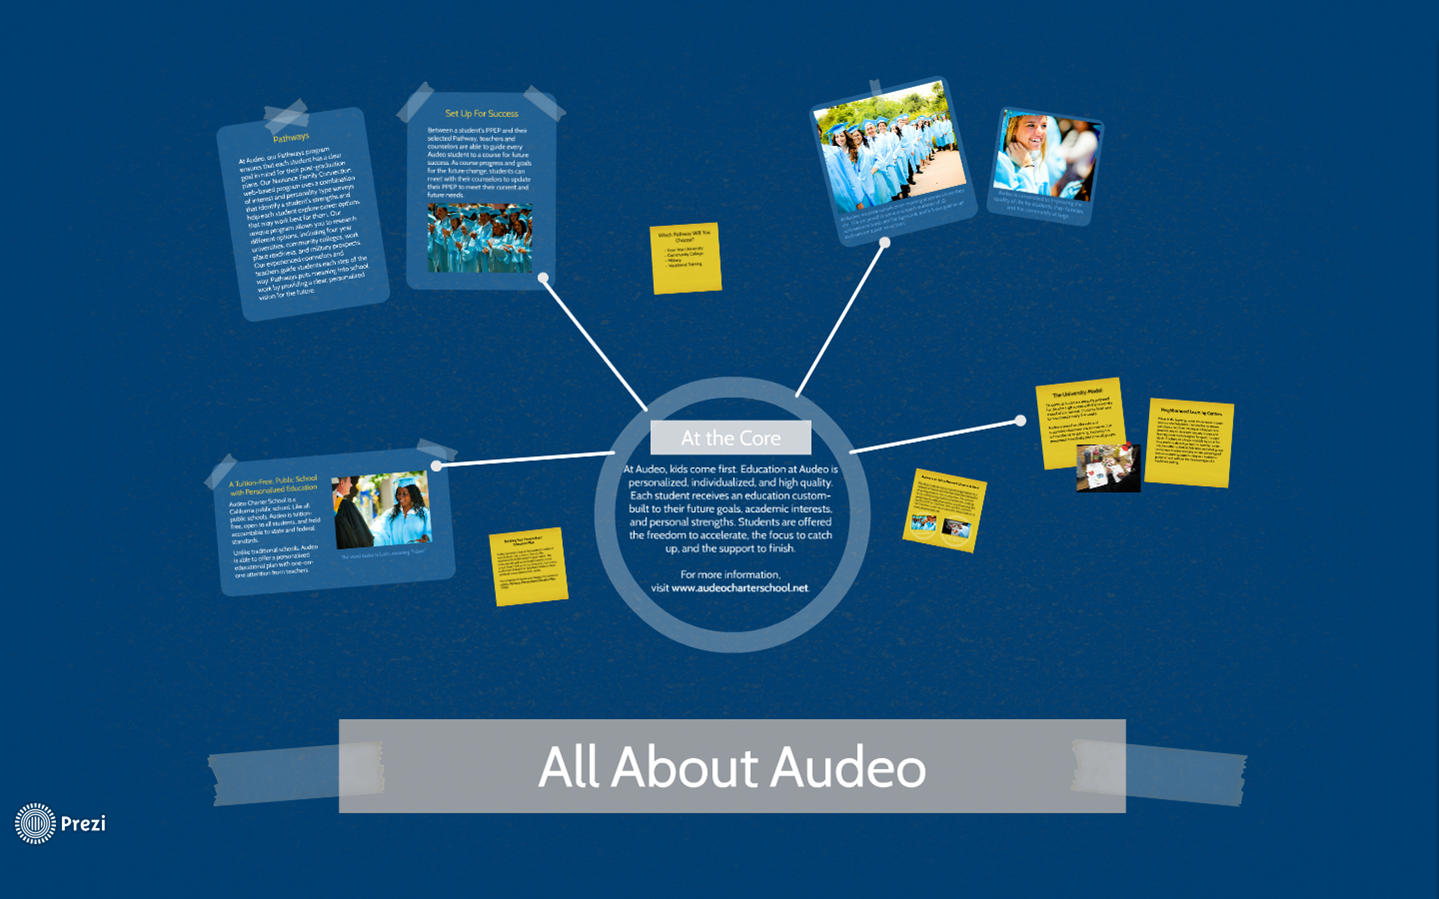 All About Audeo II